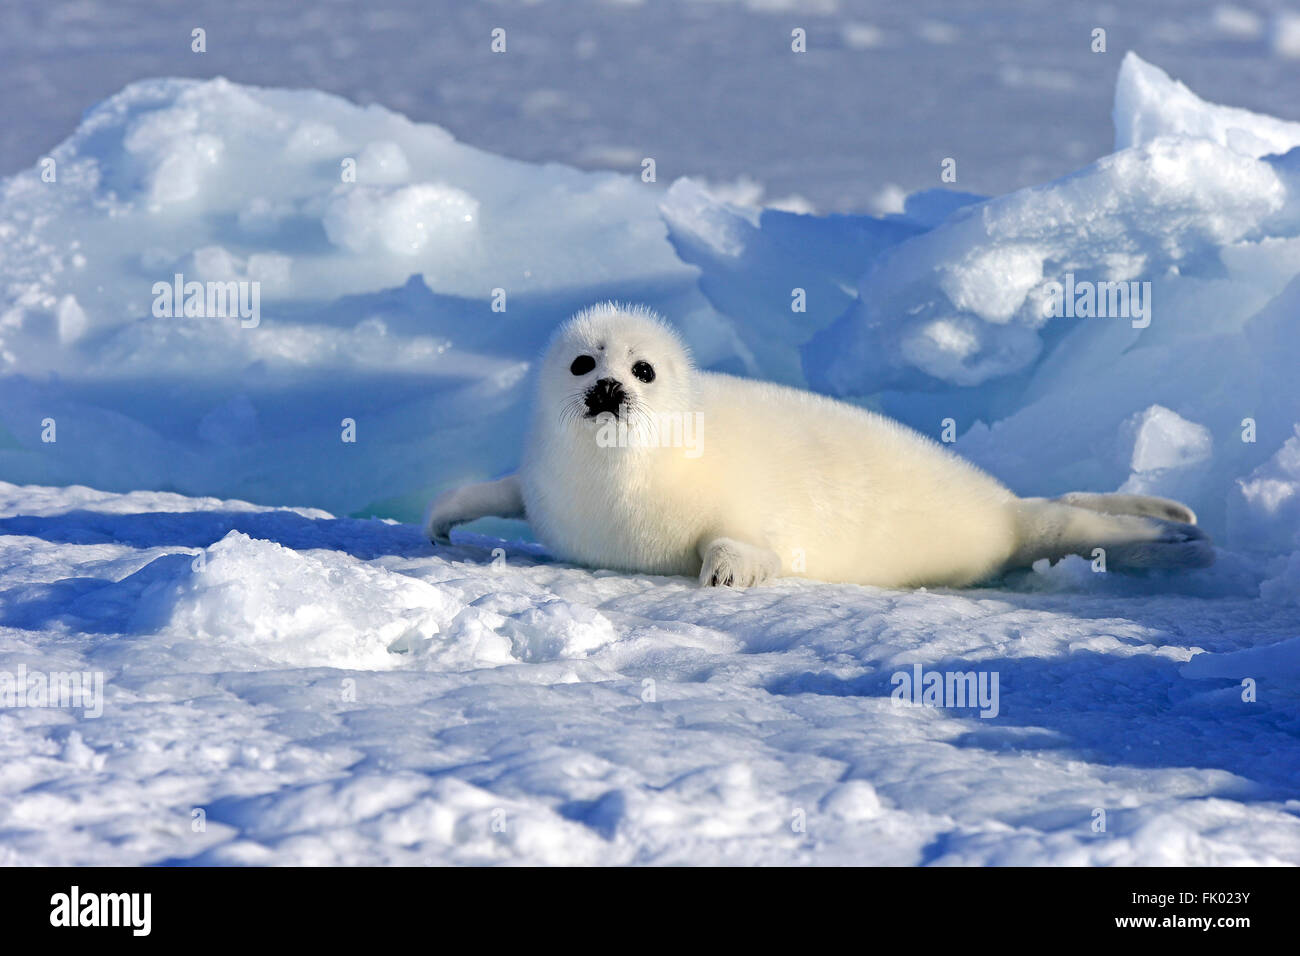 Newborn Harp Seal Gulf Of The St Lawrence River Canada Natal Coat ...